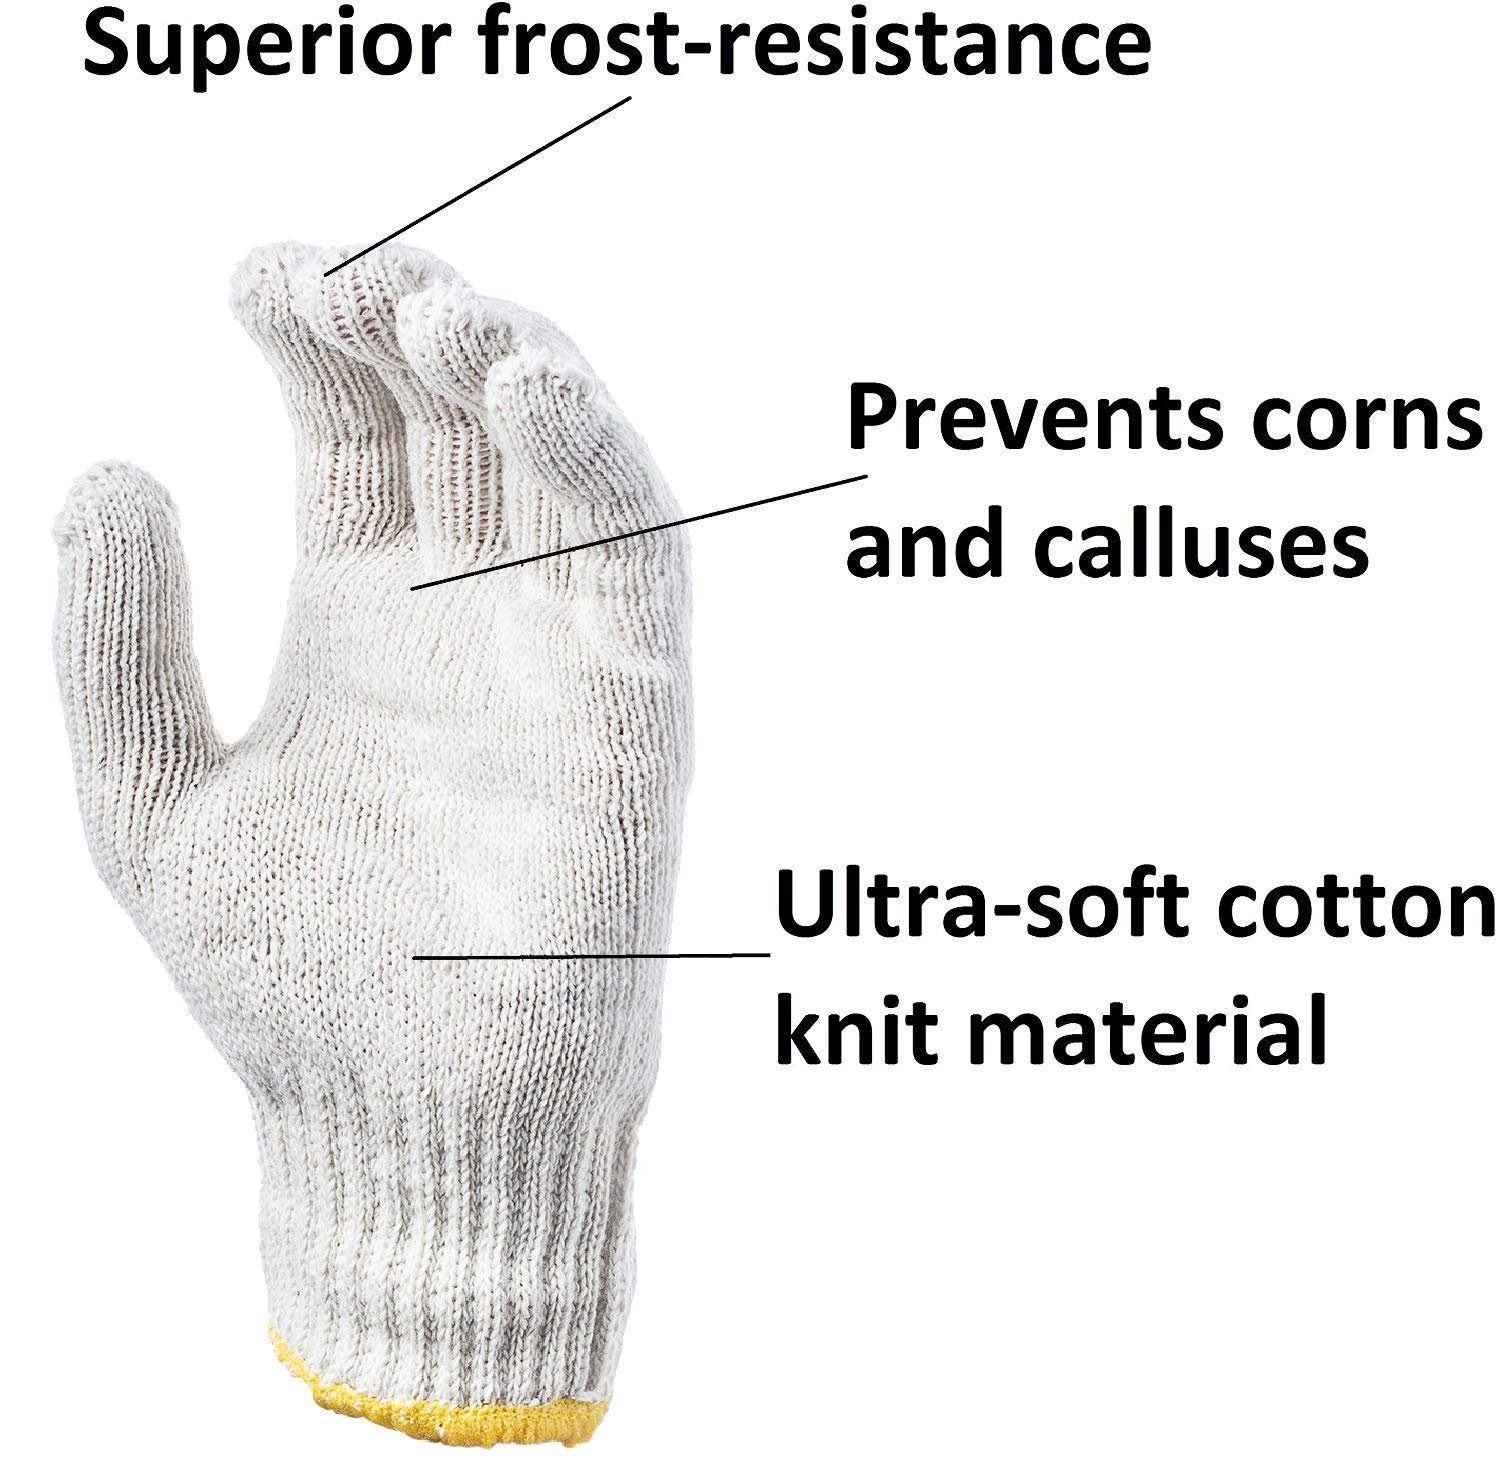 Wholesale price Washable Glove with Elastic Knit Wrist Cotton Polyester Gloves 12 Pack Beige String Knit Gloves 10 Protective Industrial Work Gloves for Men Plain Seamless Workwear Gloves ABC Pack /& Supply